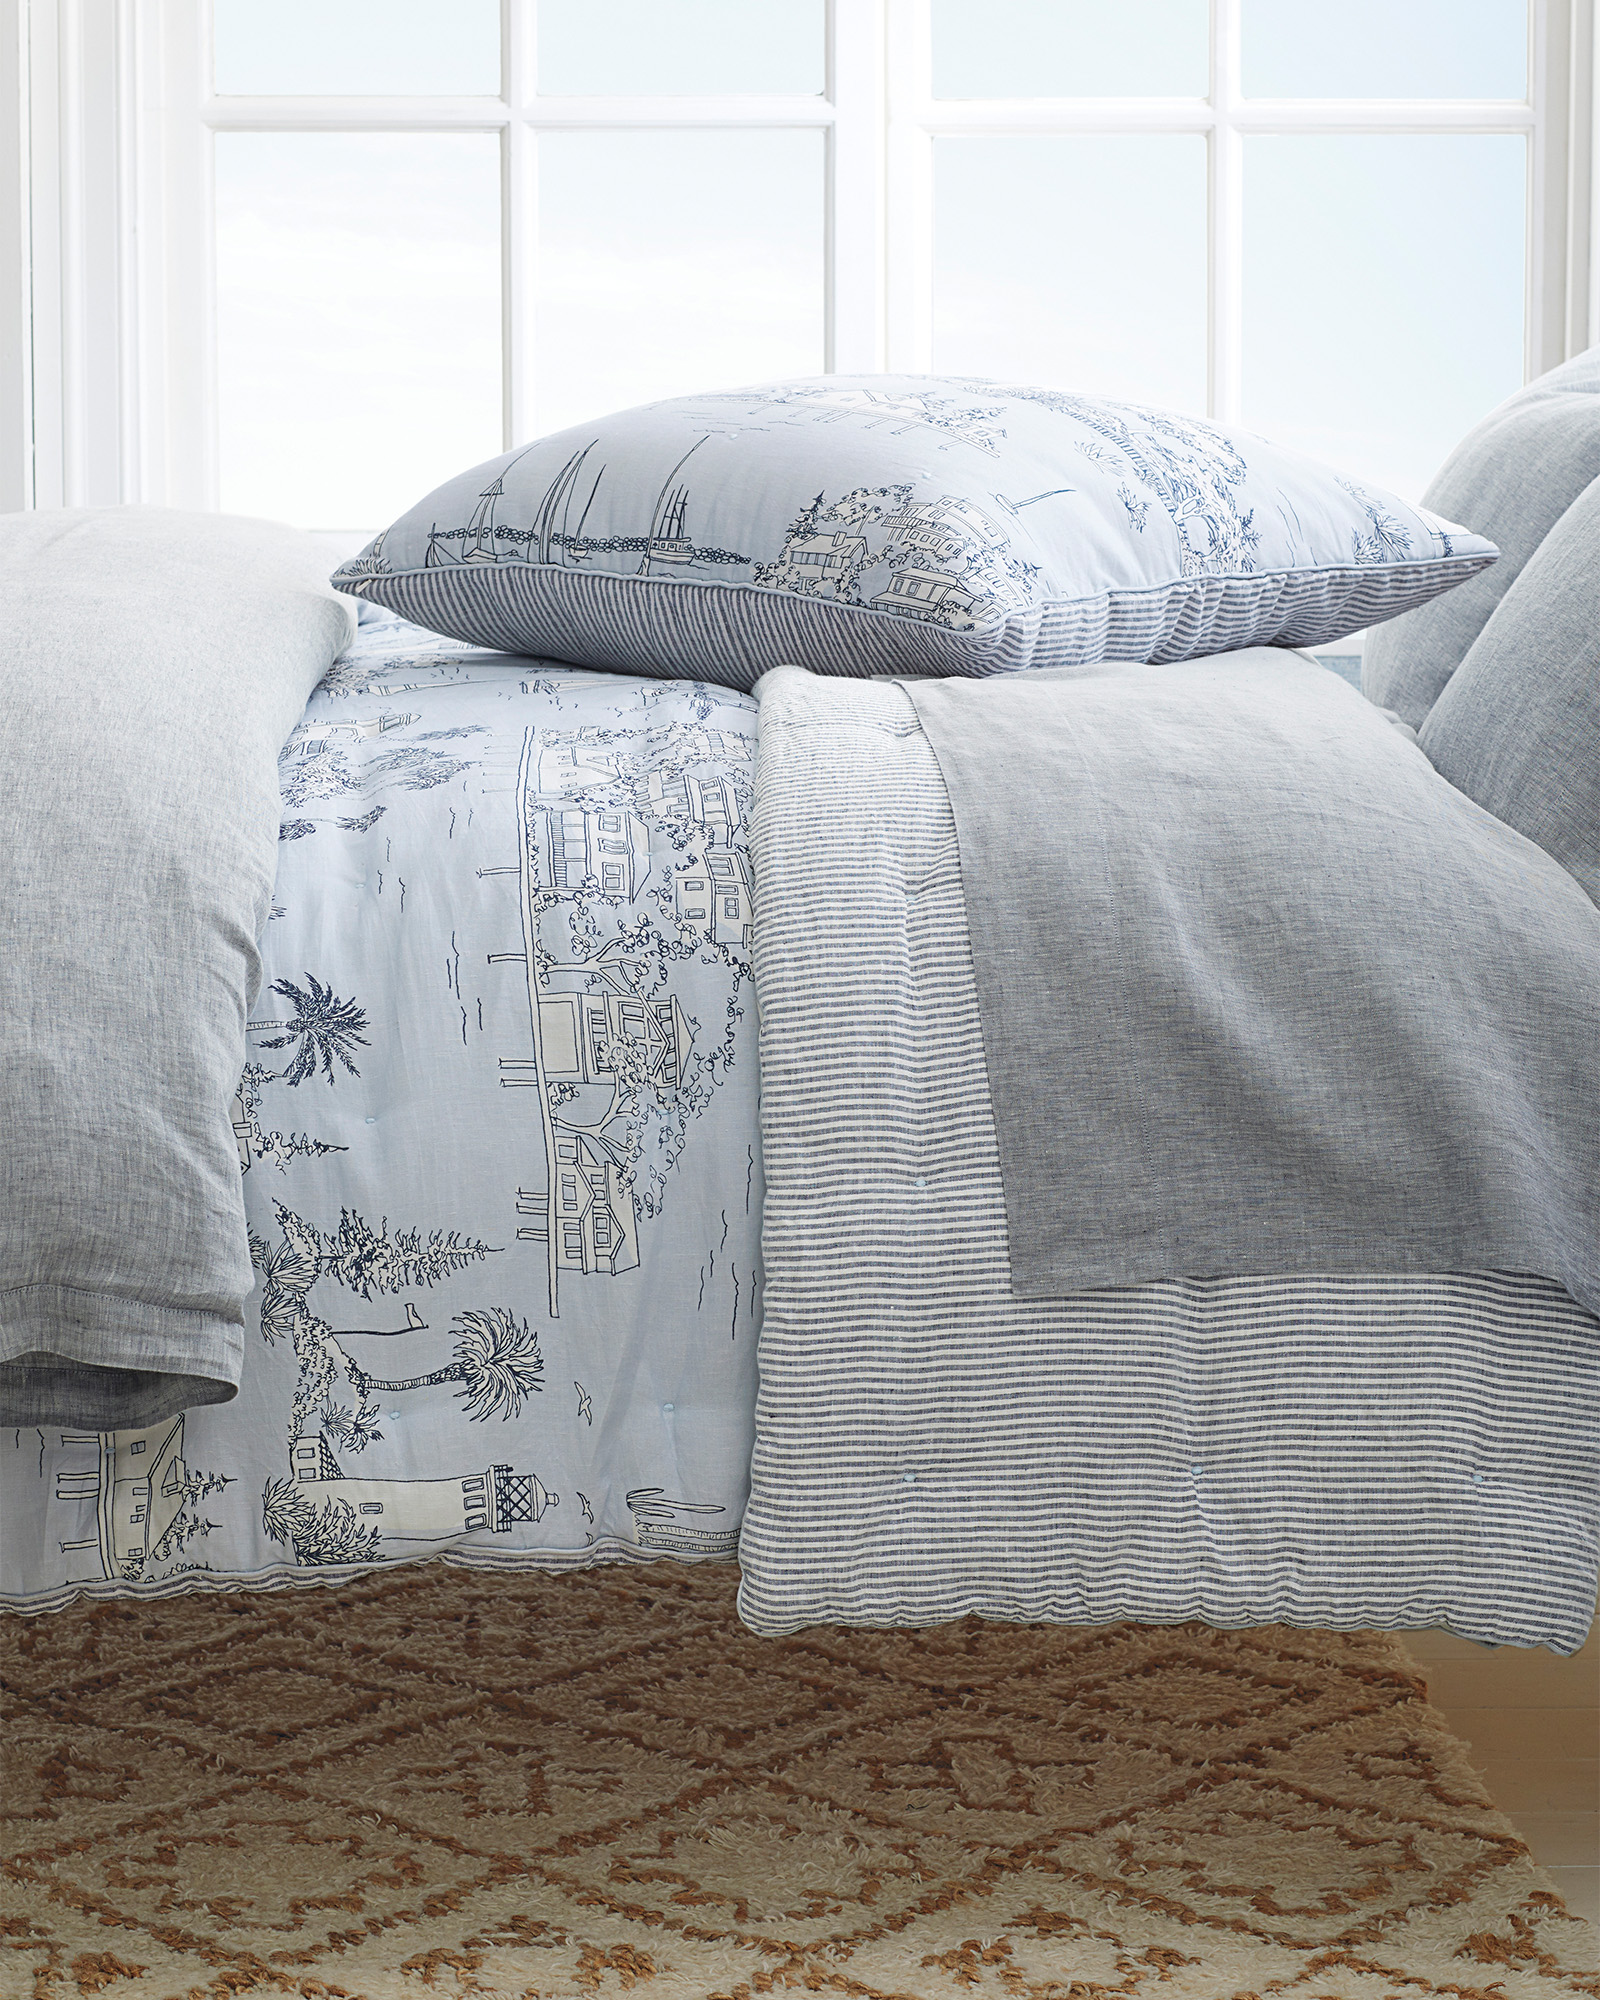 Westwind quilt from Serena & Lily has lovely light blue grey tones and coastal style! #coastalbedroom #quilts #bedding #bluegrey